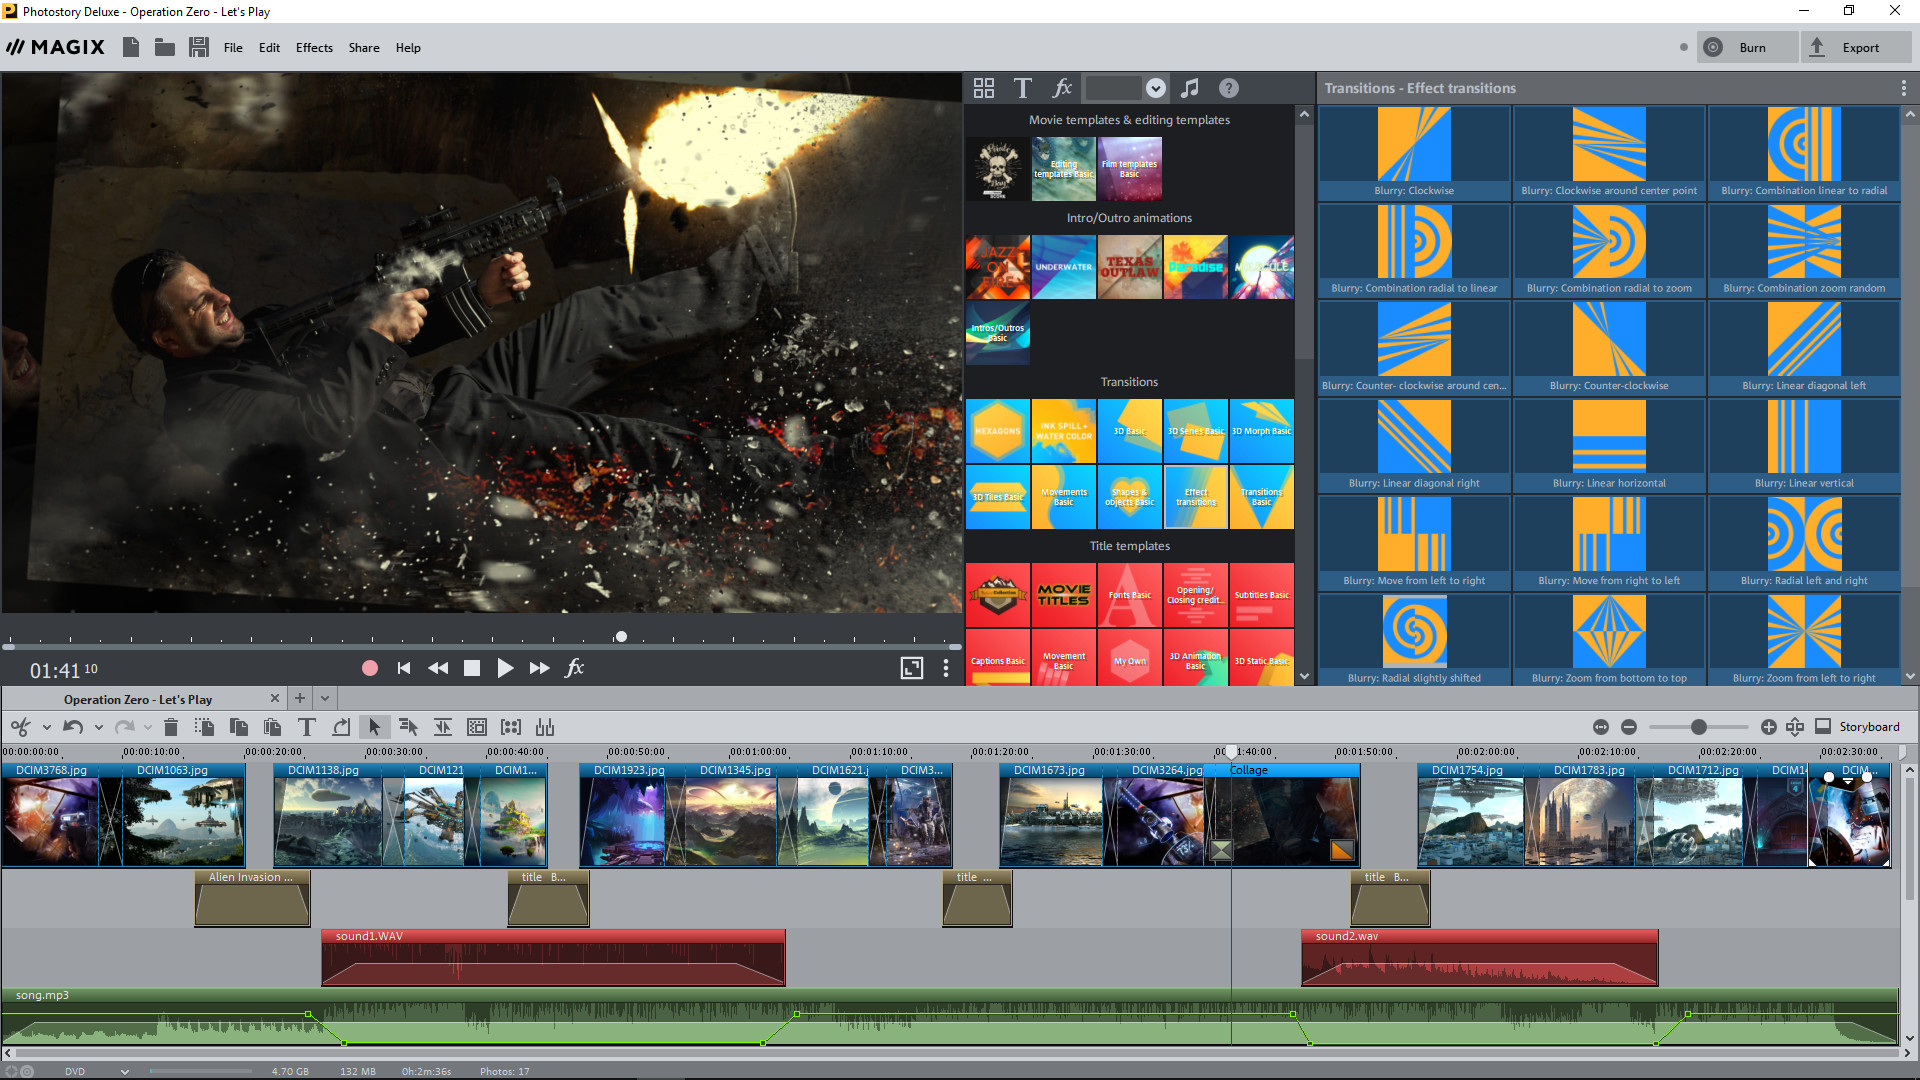 MAGIX Photostory 2018 Deluxe Steam Edition screenshot